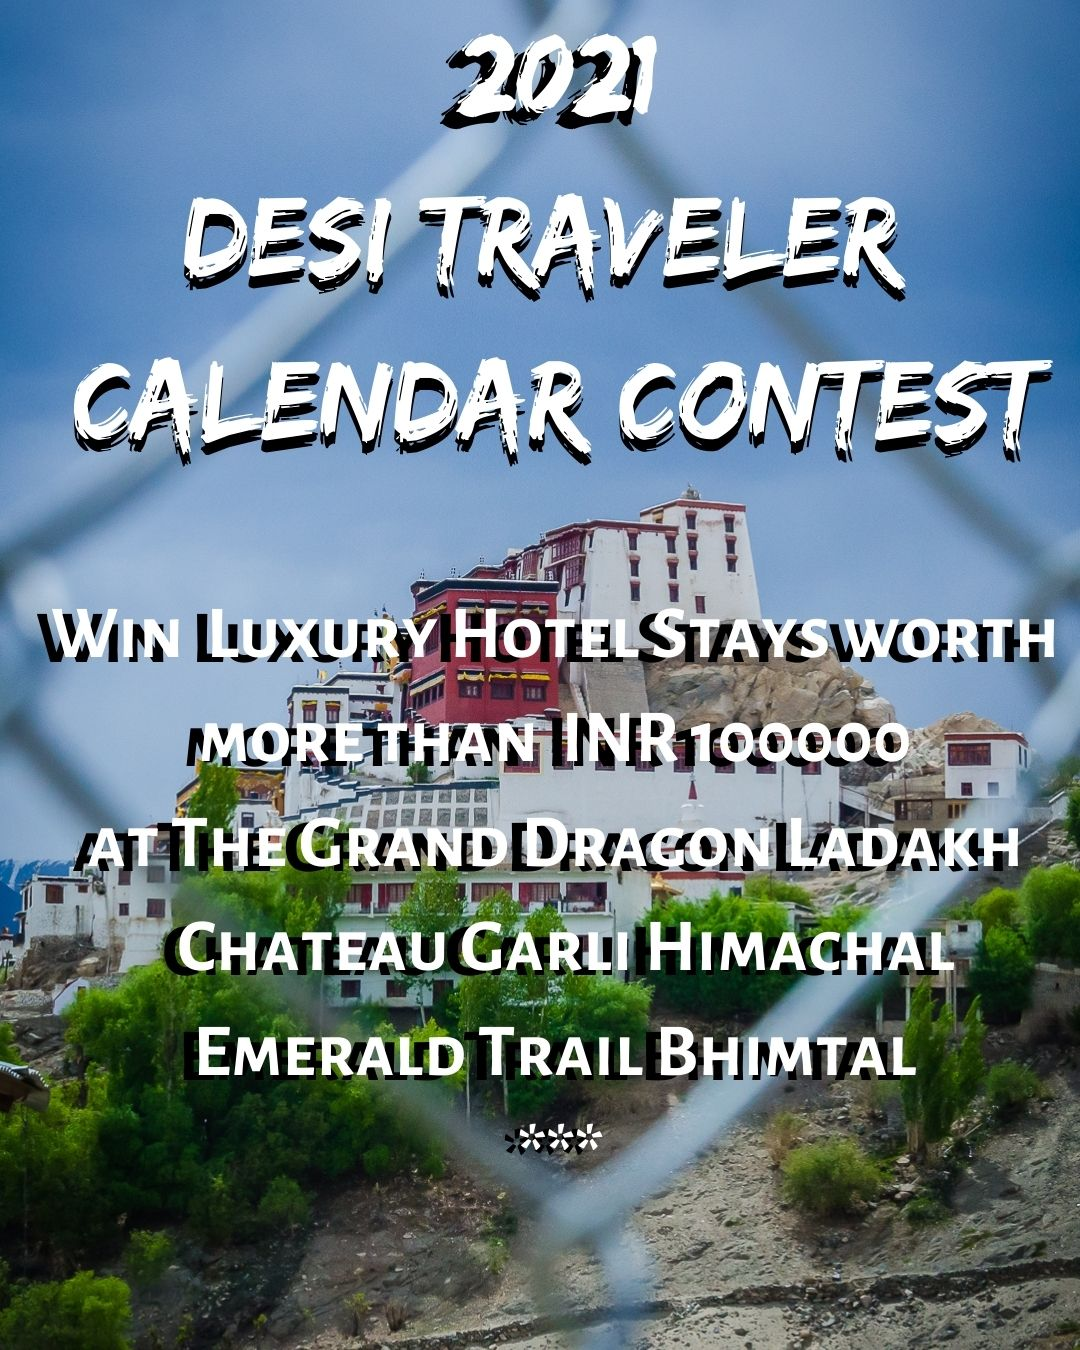 travel contest for 2021 travel calendar